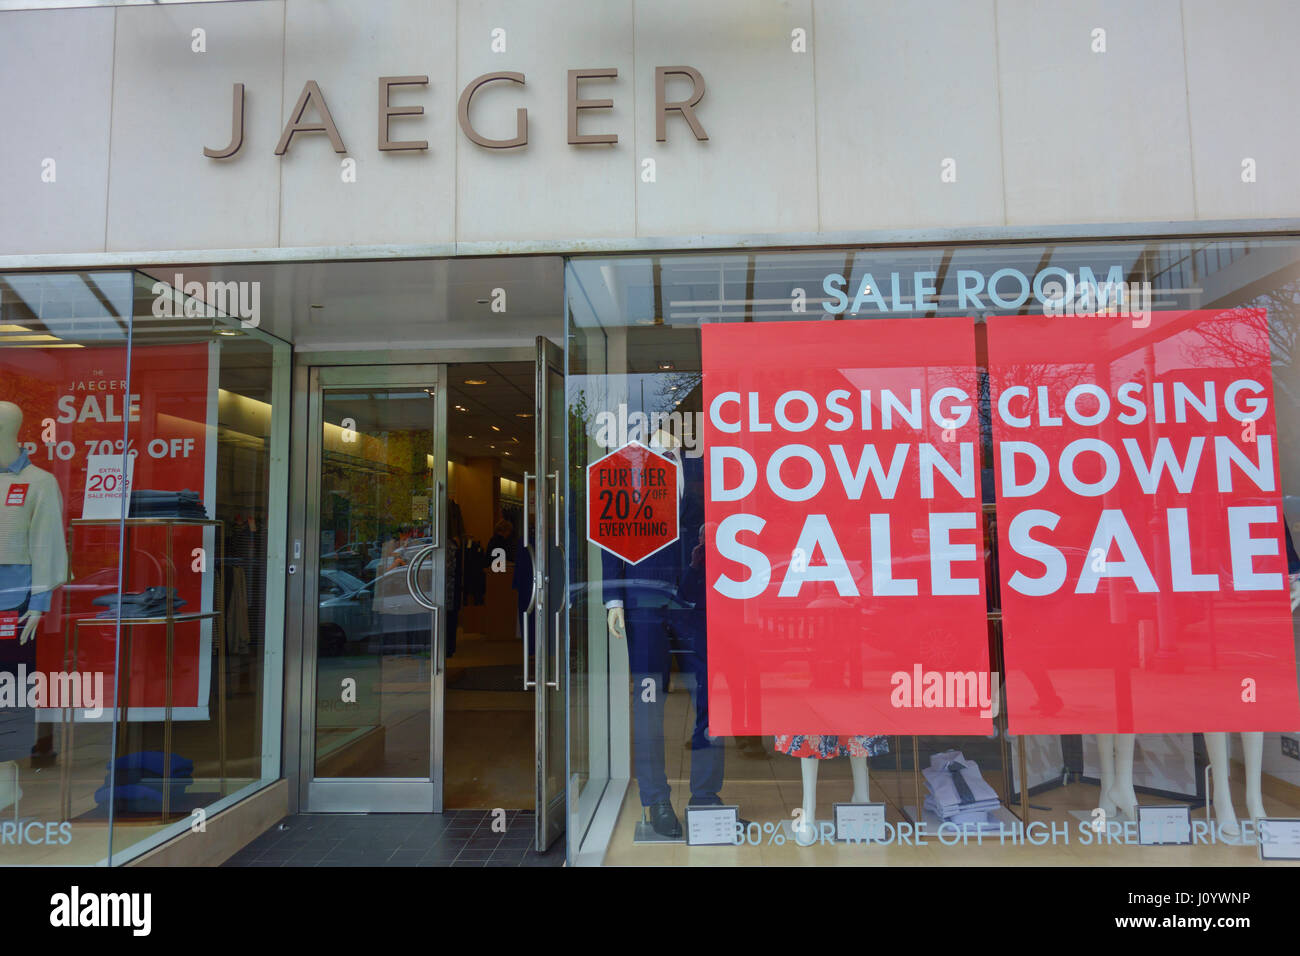 Closing down sale at Jaeger shop in Southport, Merseyside, UK Stock Photo